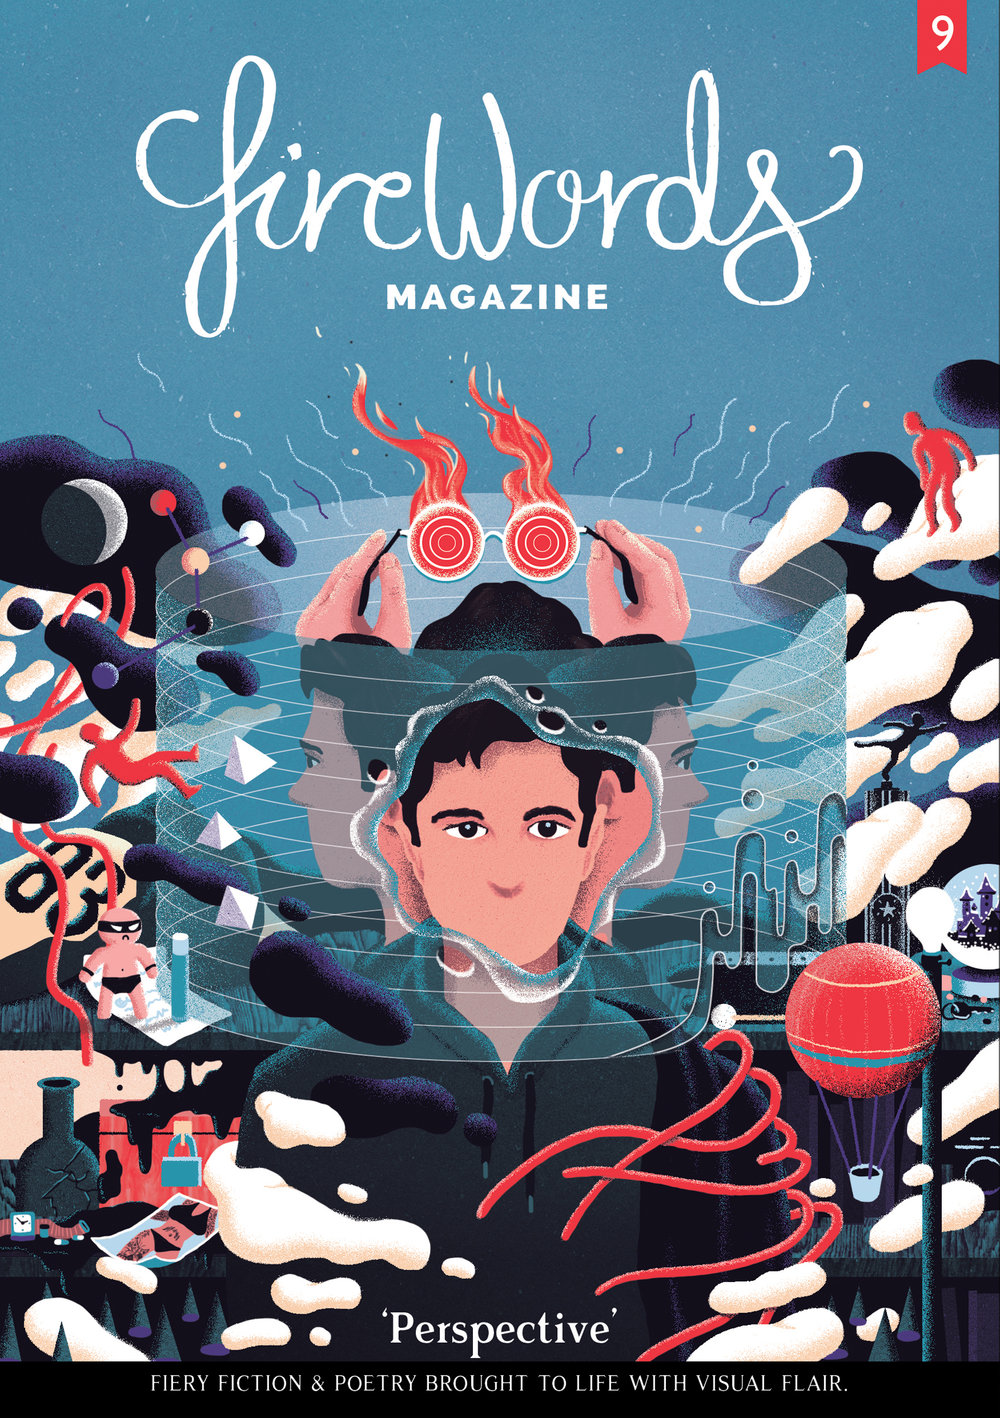 Cover for Firewords Magazine